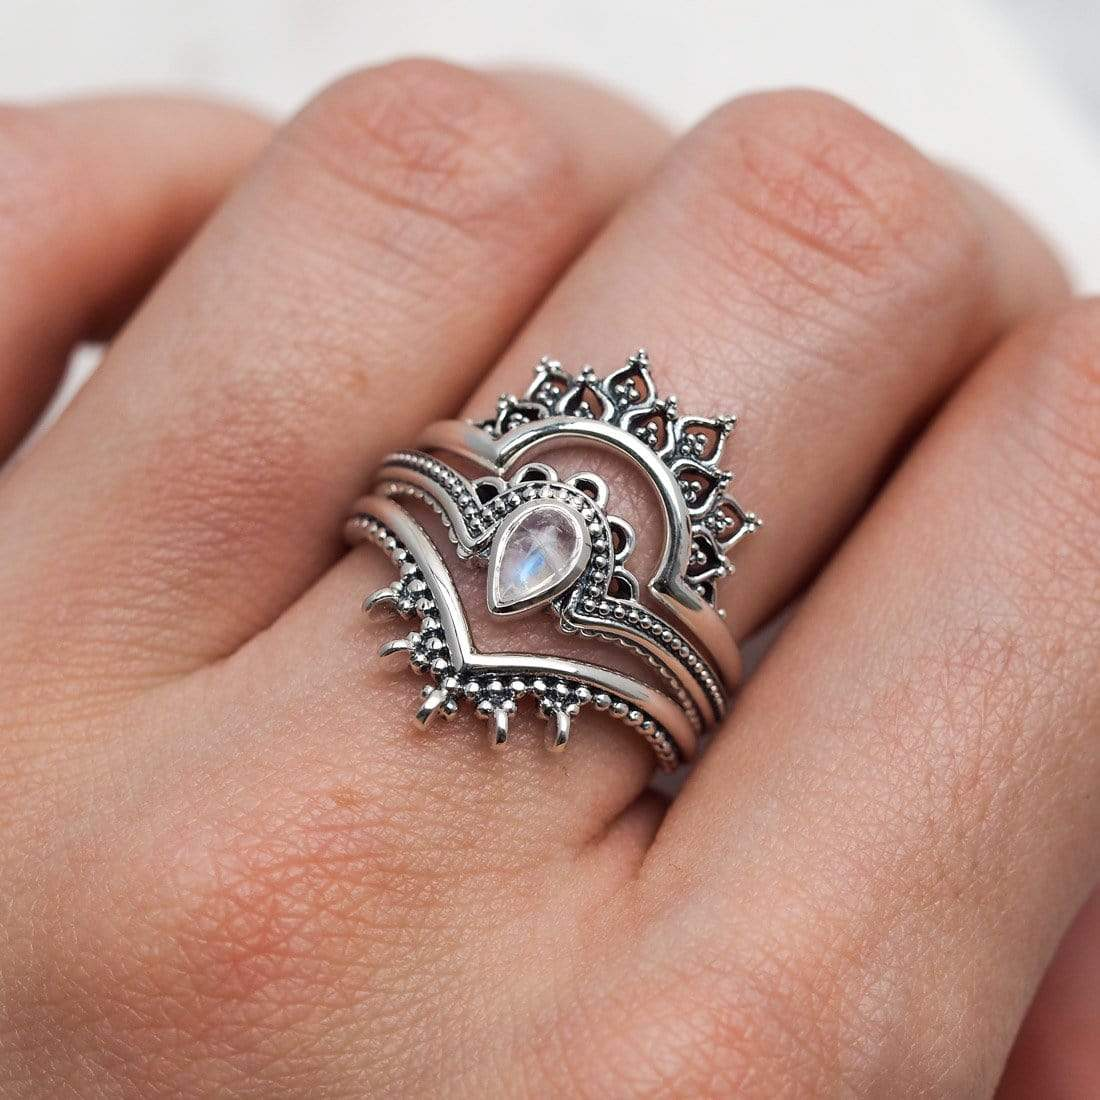 Midsummer Star Ring Ataraxia Moonstone Ring